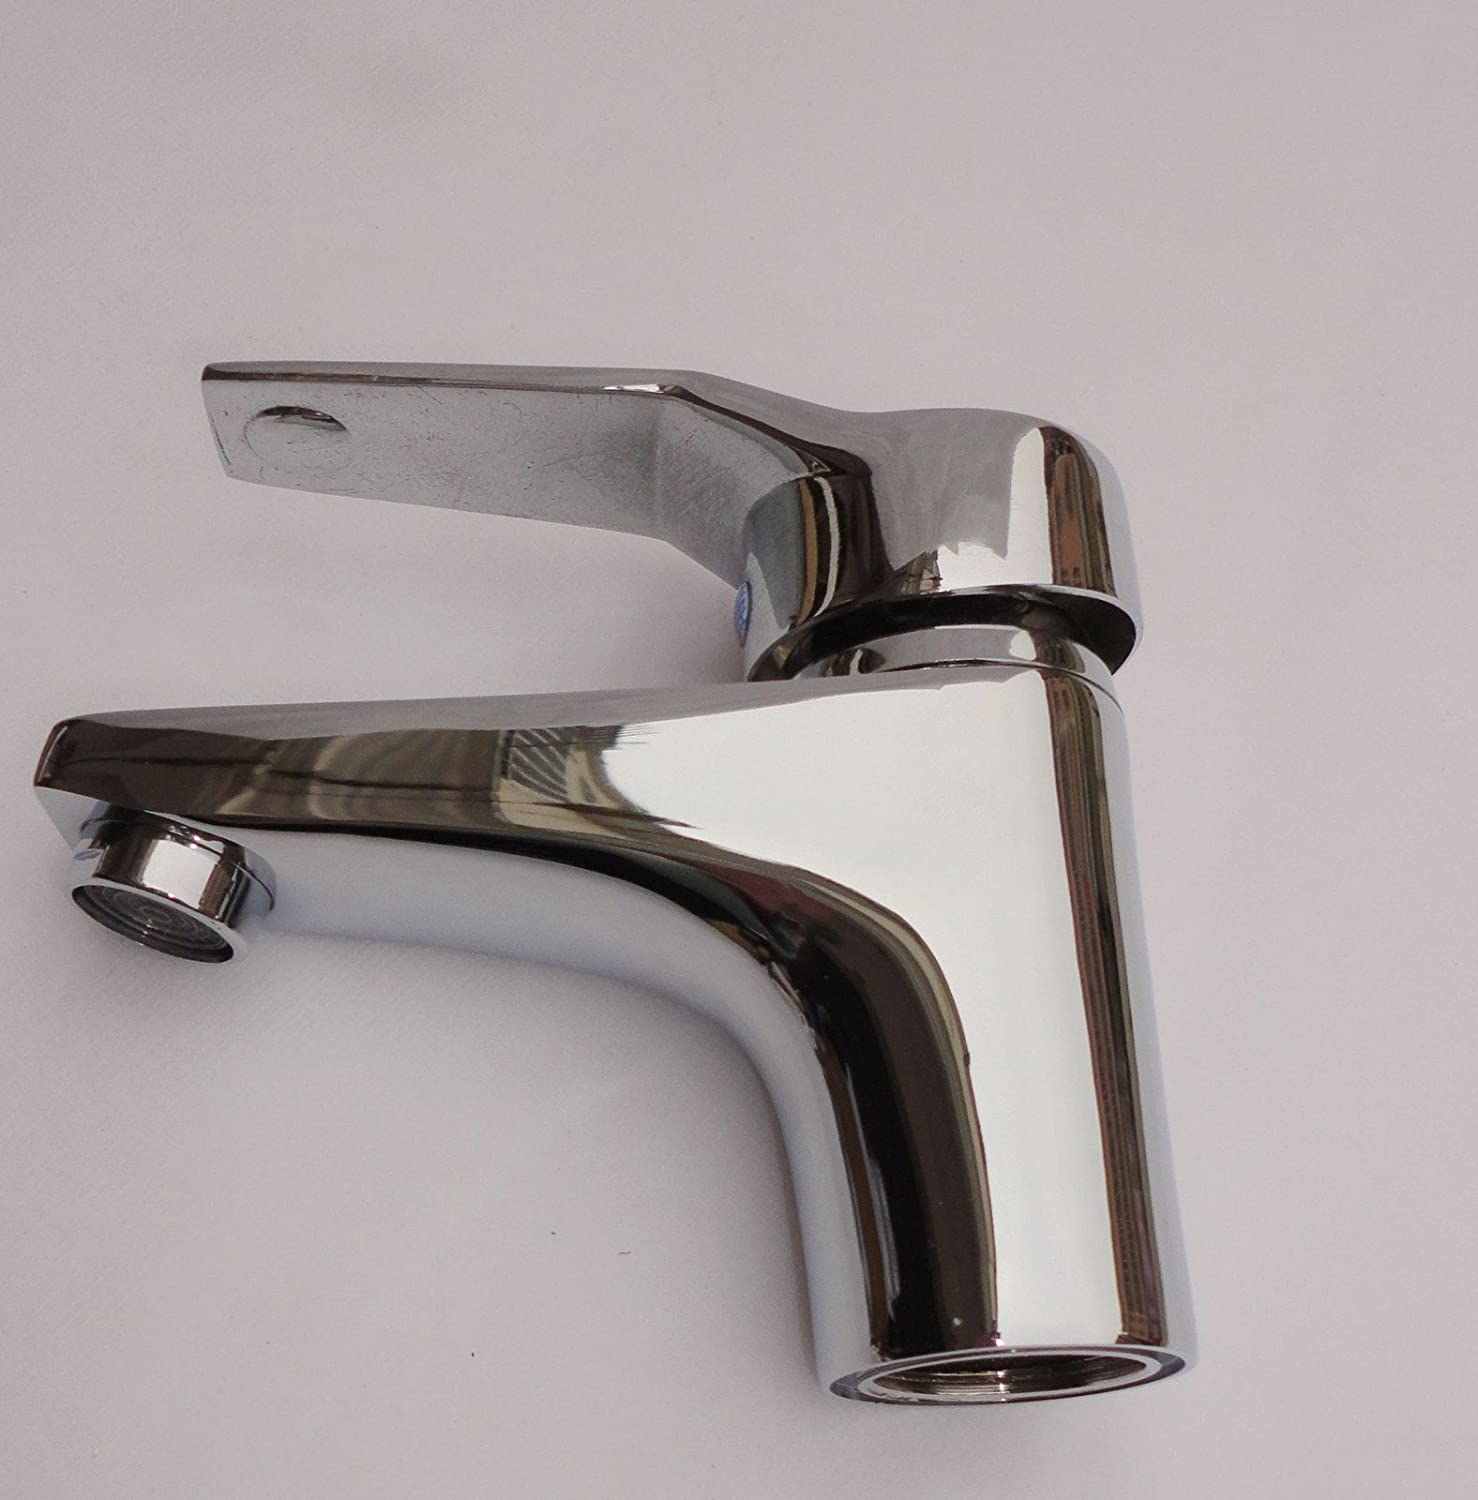 TS-nslixuan-Water tap Cold And Hot Basin Faucet Copper Single Hole Washbasin